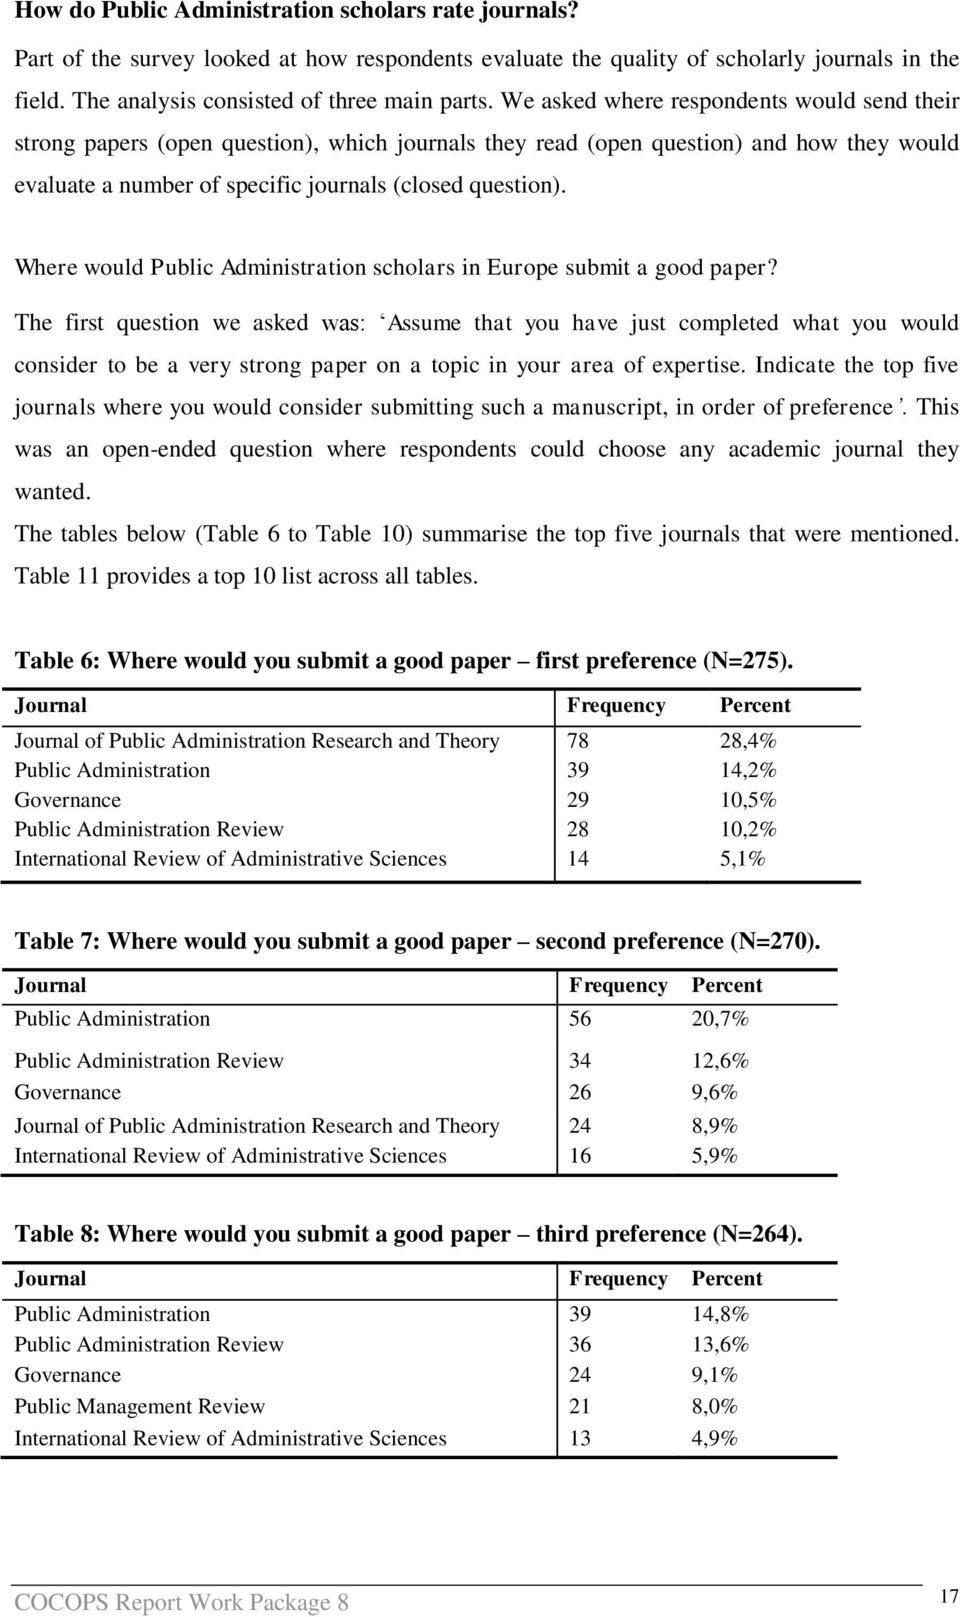 Where would Public Administration scholars in Europe submit a good paper?